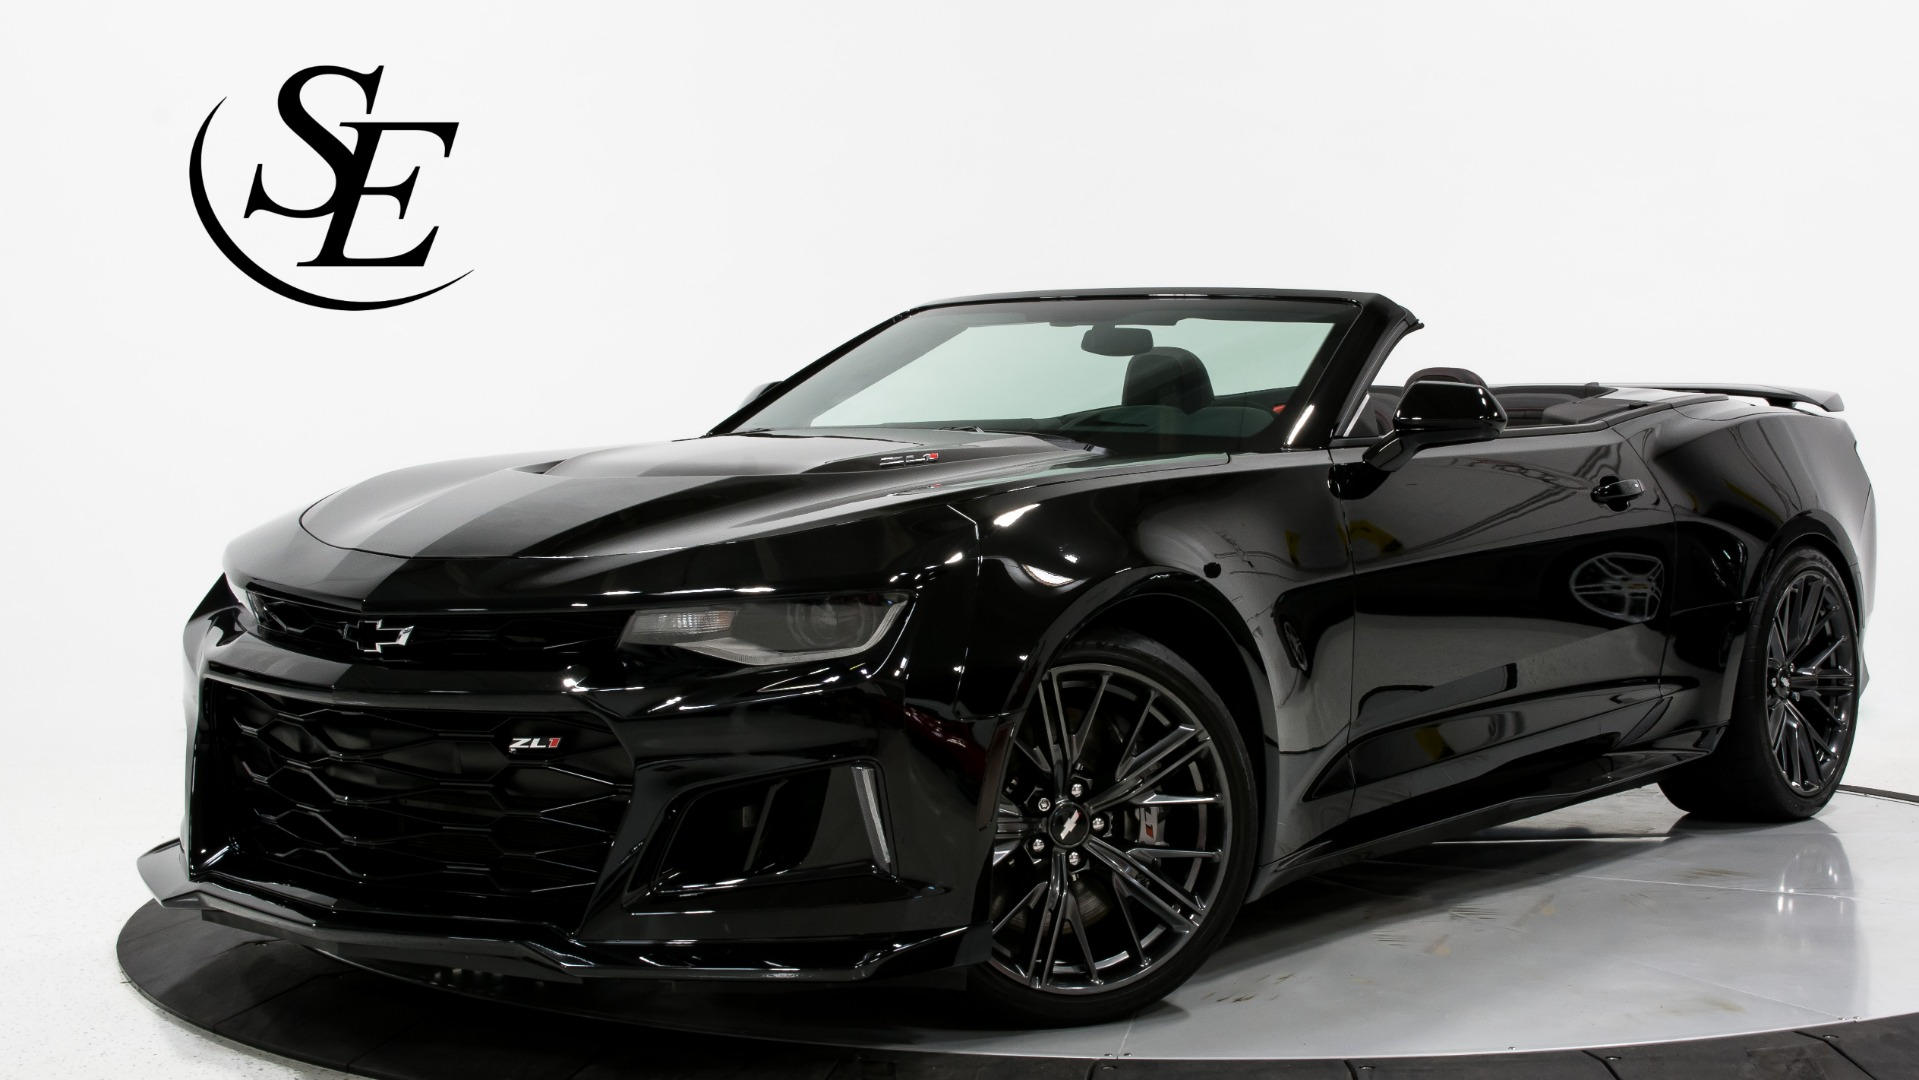 2017 Chevrolet Camaro ZL1 Stock for sale near Pompano Beach